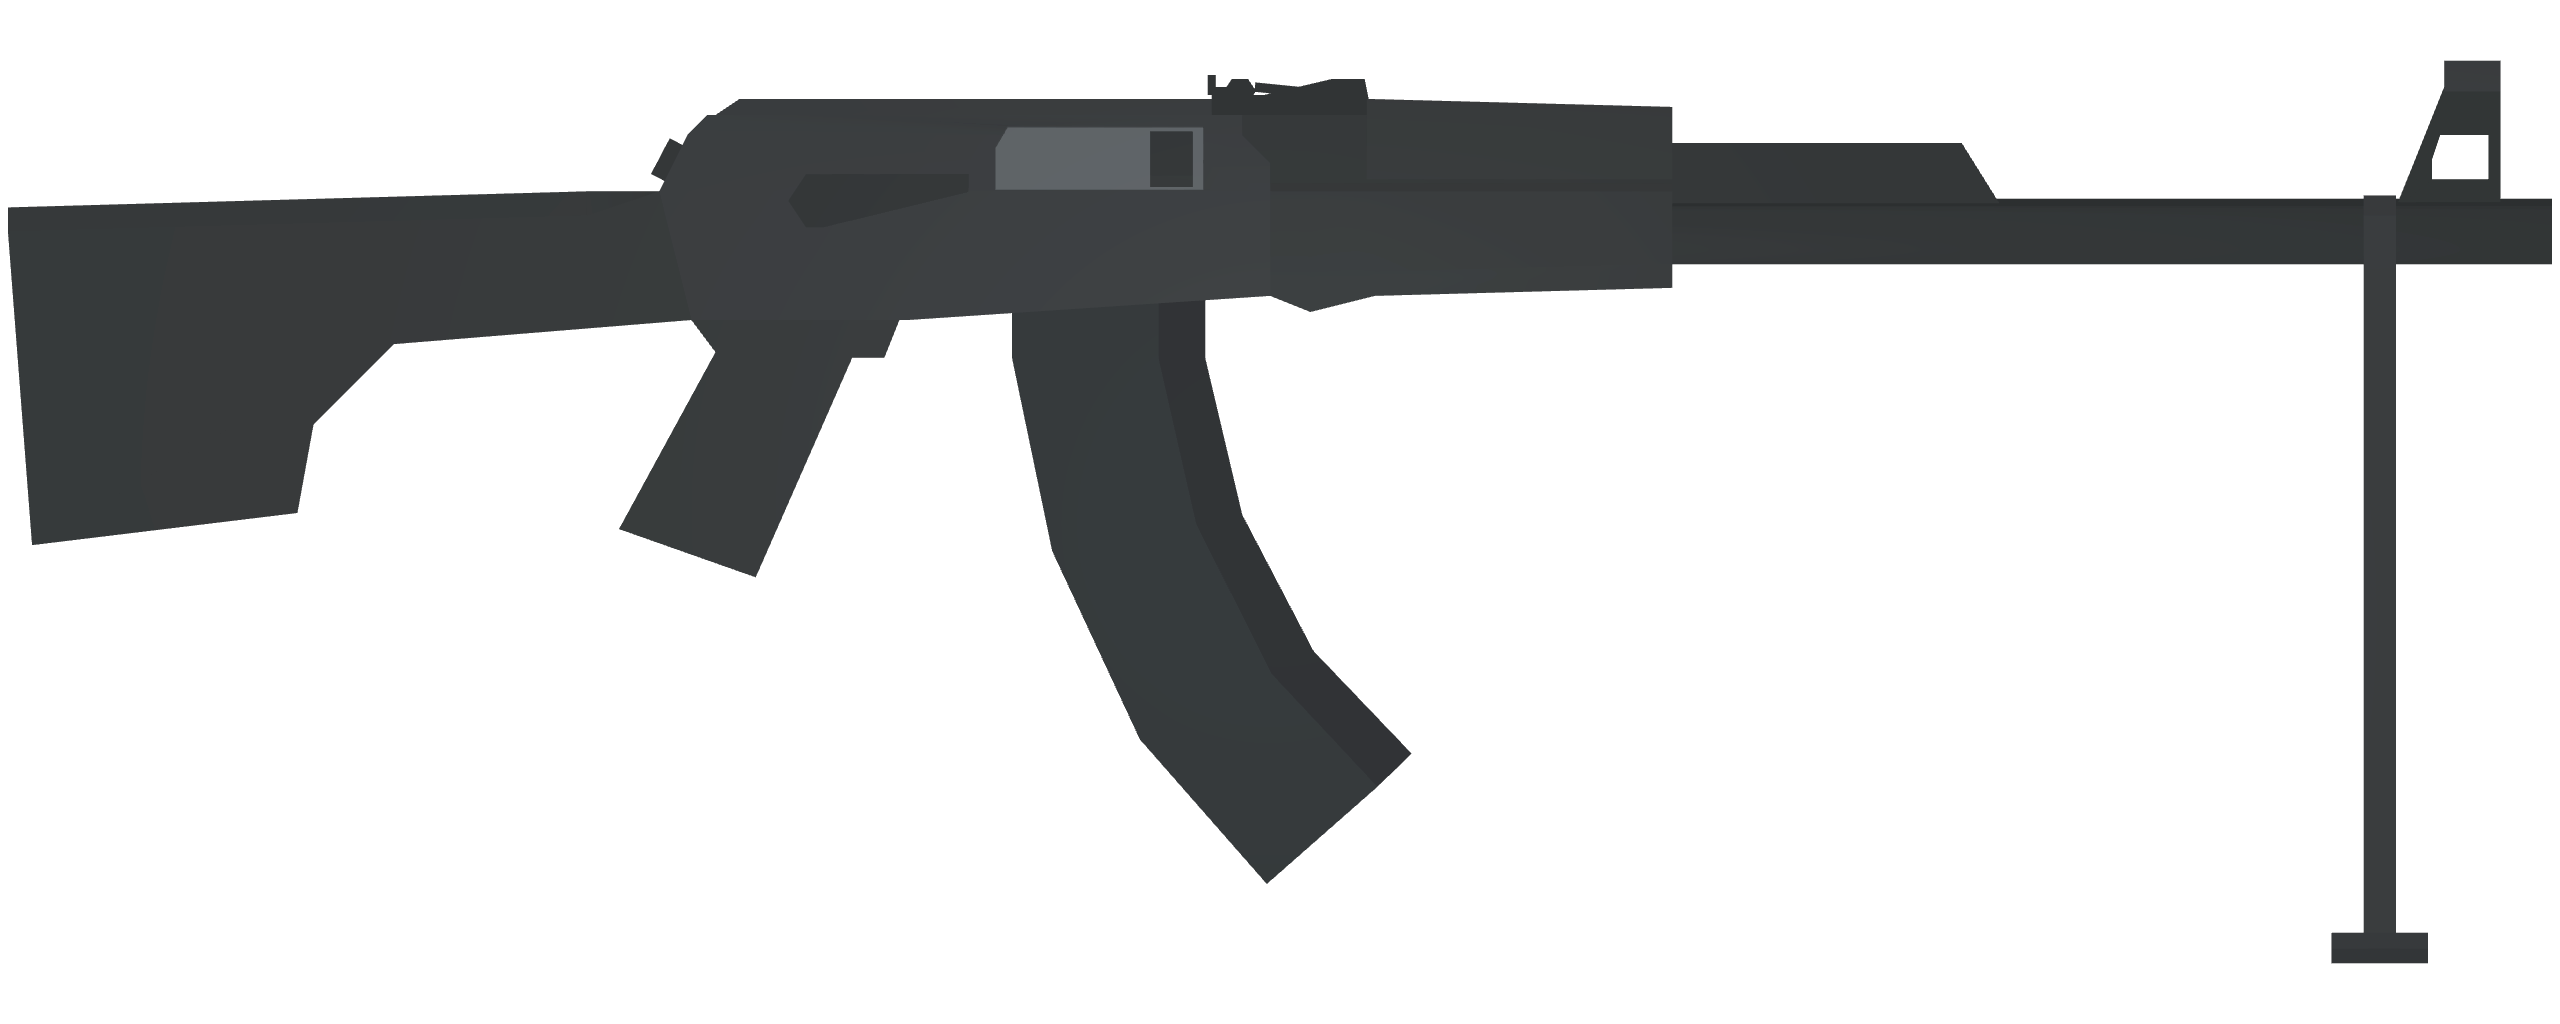 Unturned Uncreated Warfare Mods & All ID List + Attachments - Russian Weapons - B26DAC5